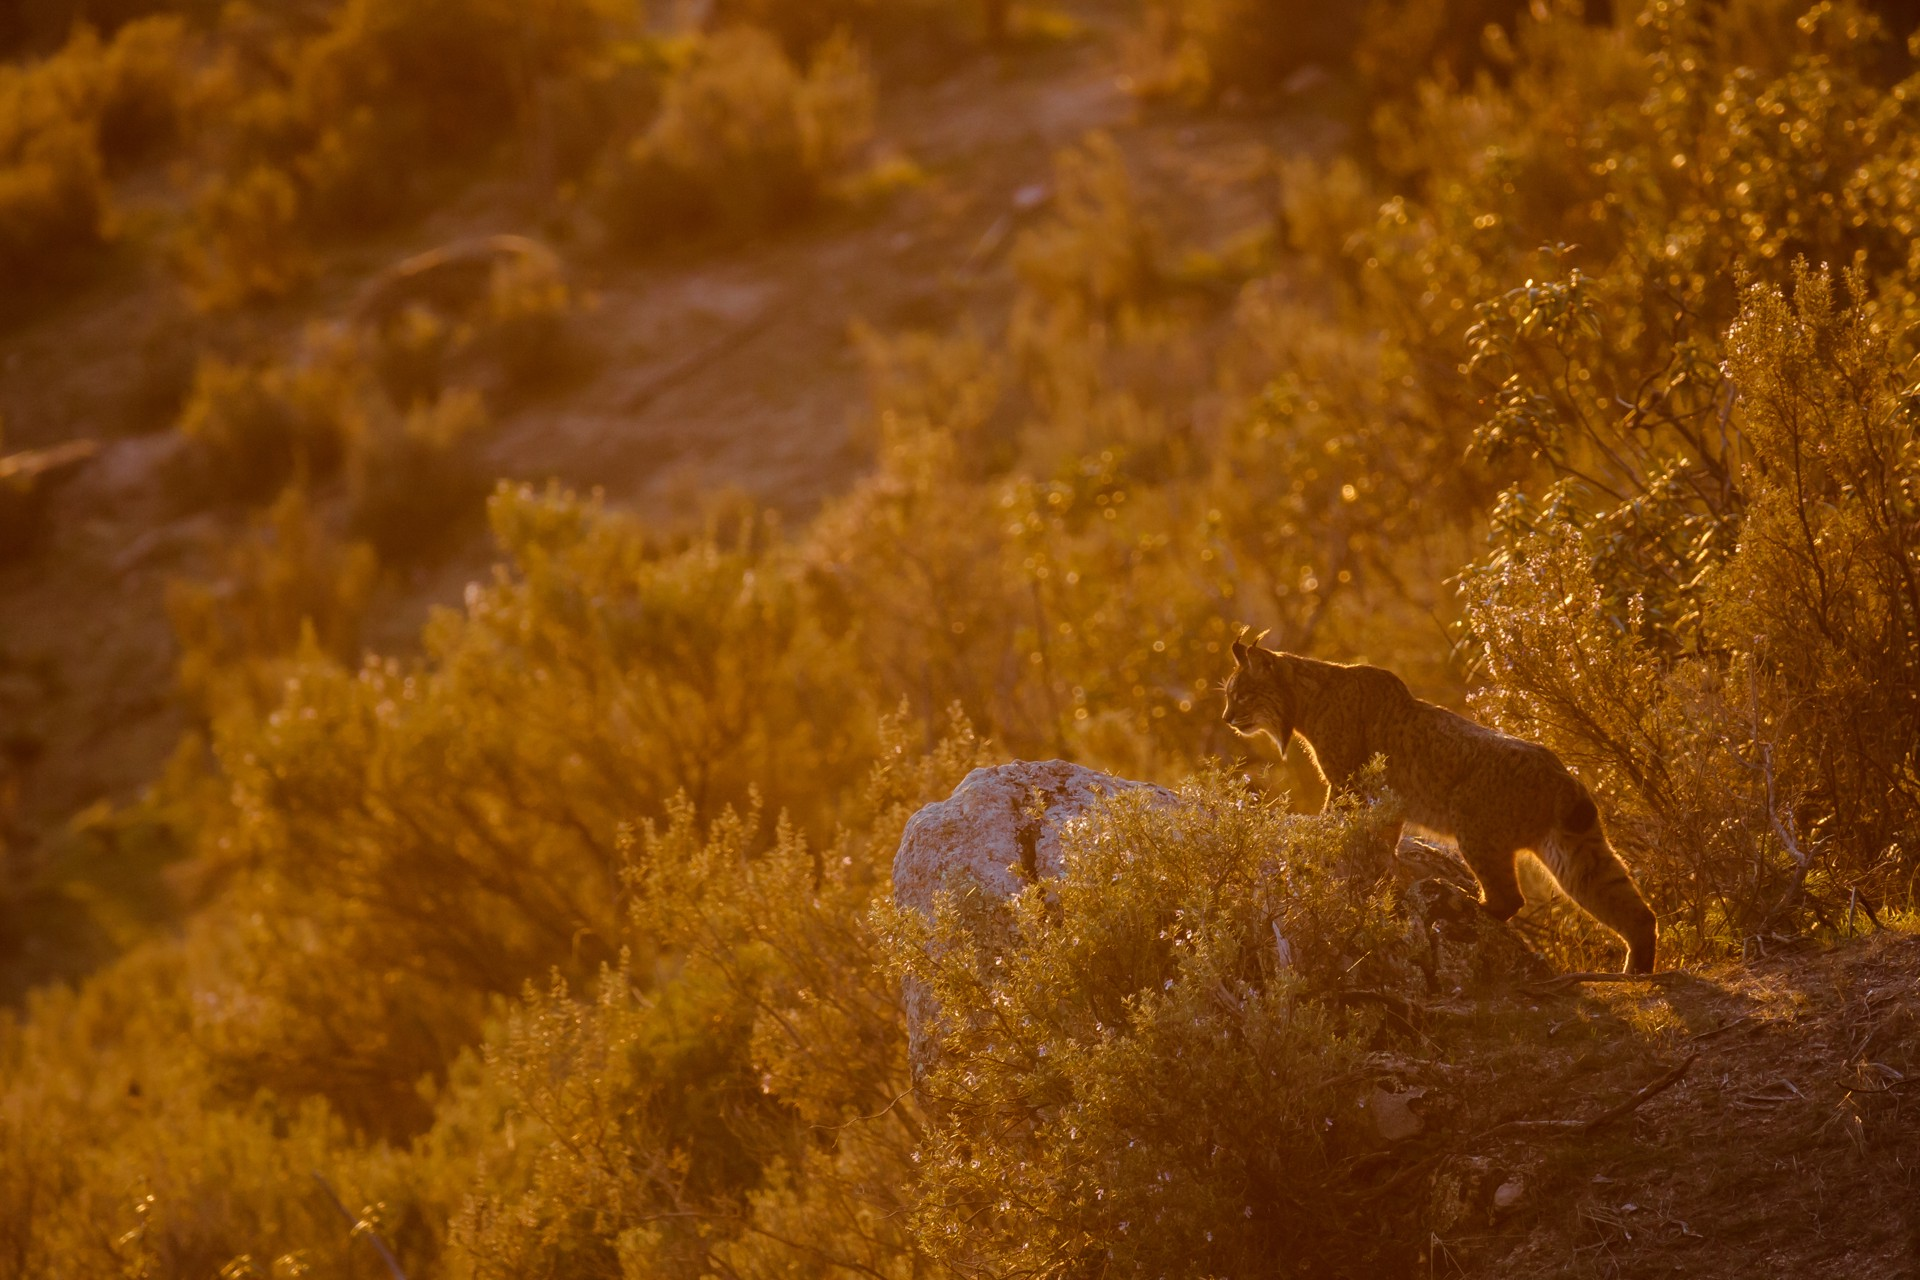 A lynx stalks the landscape in Spain.